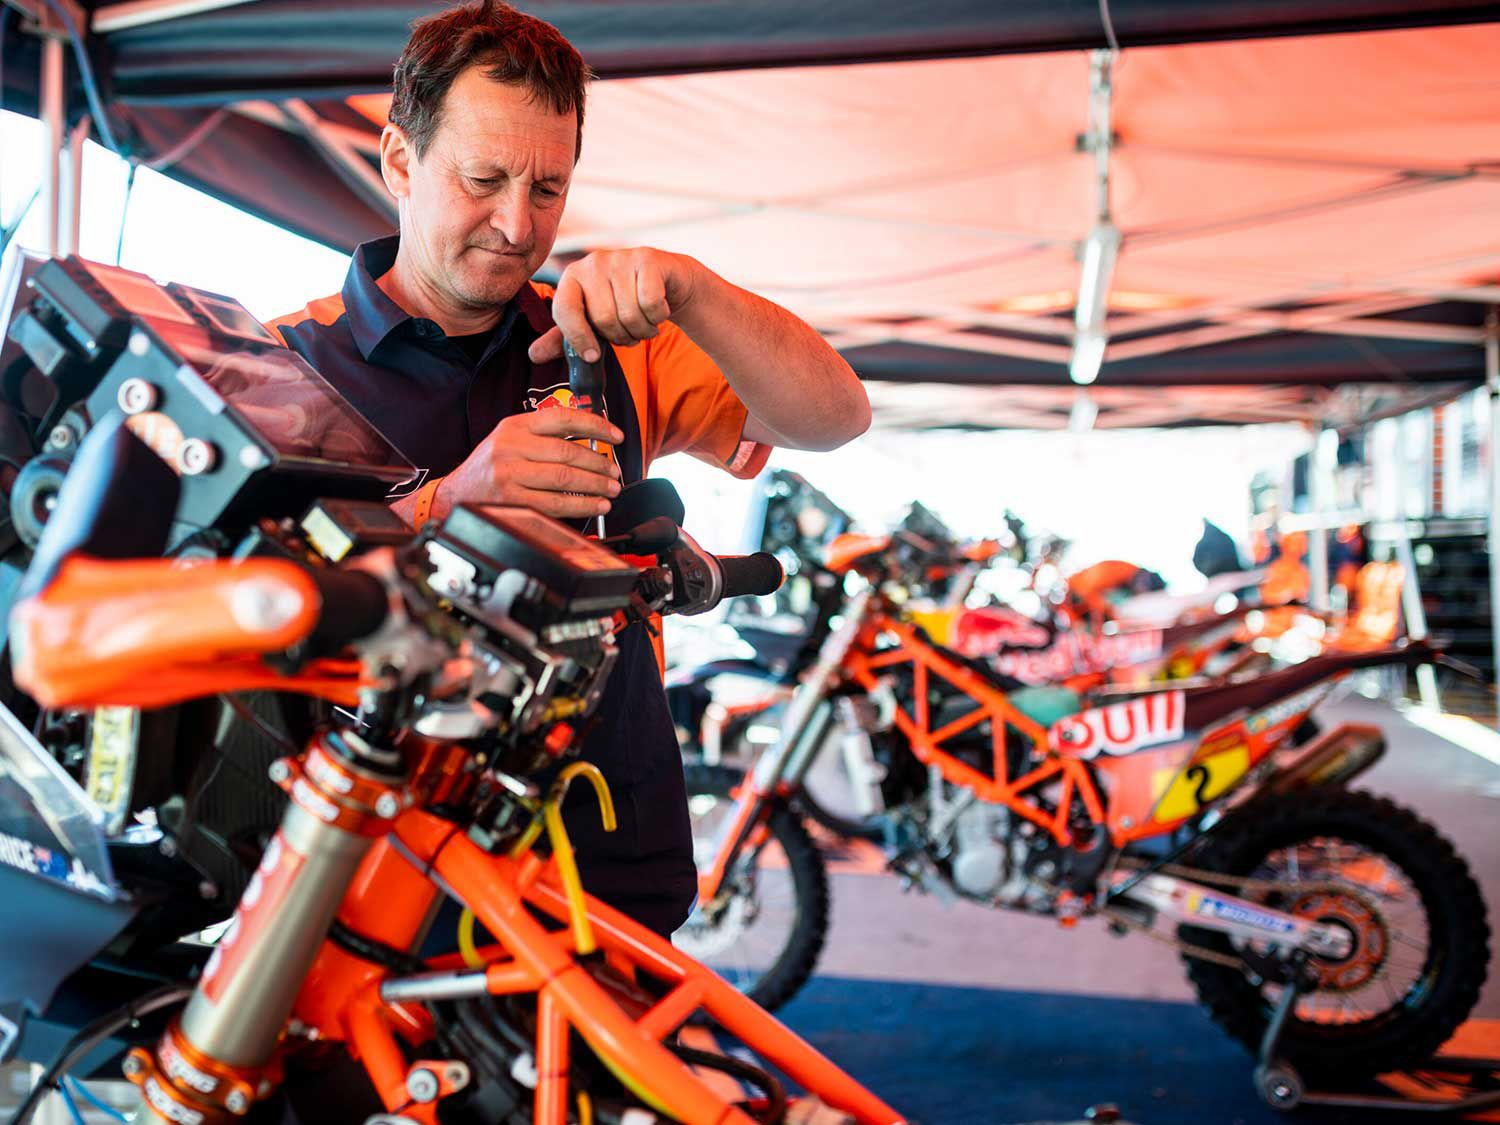 Here is a look behind the scenes of the Red Bull KTM Factory Team as a mechanic works on the bikes during the rest day of Dakar 2020 at Riyadh.